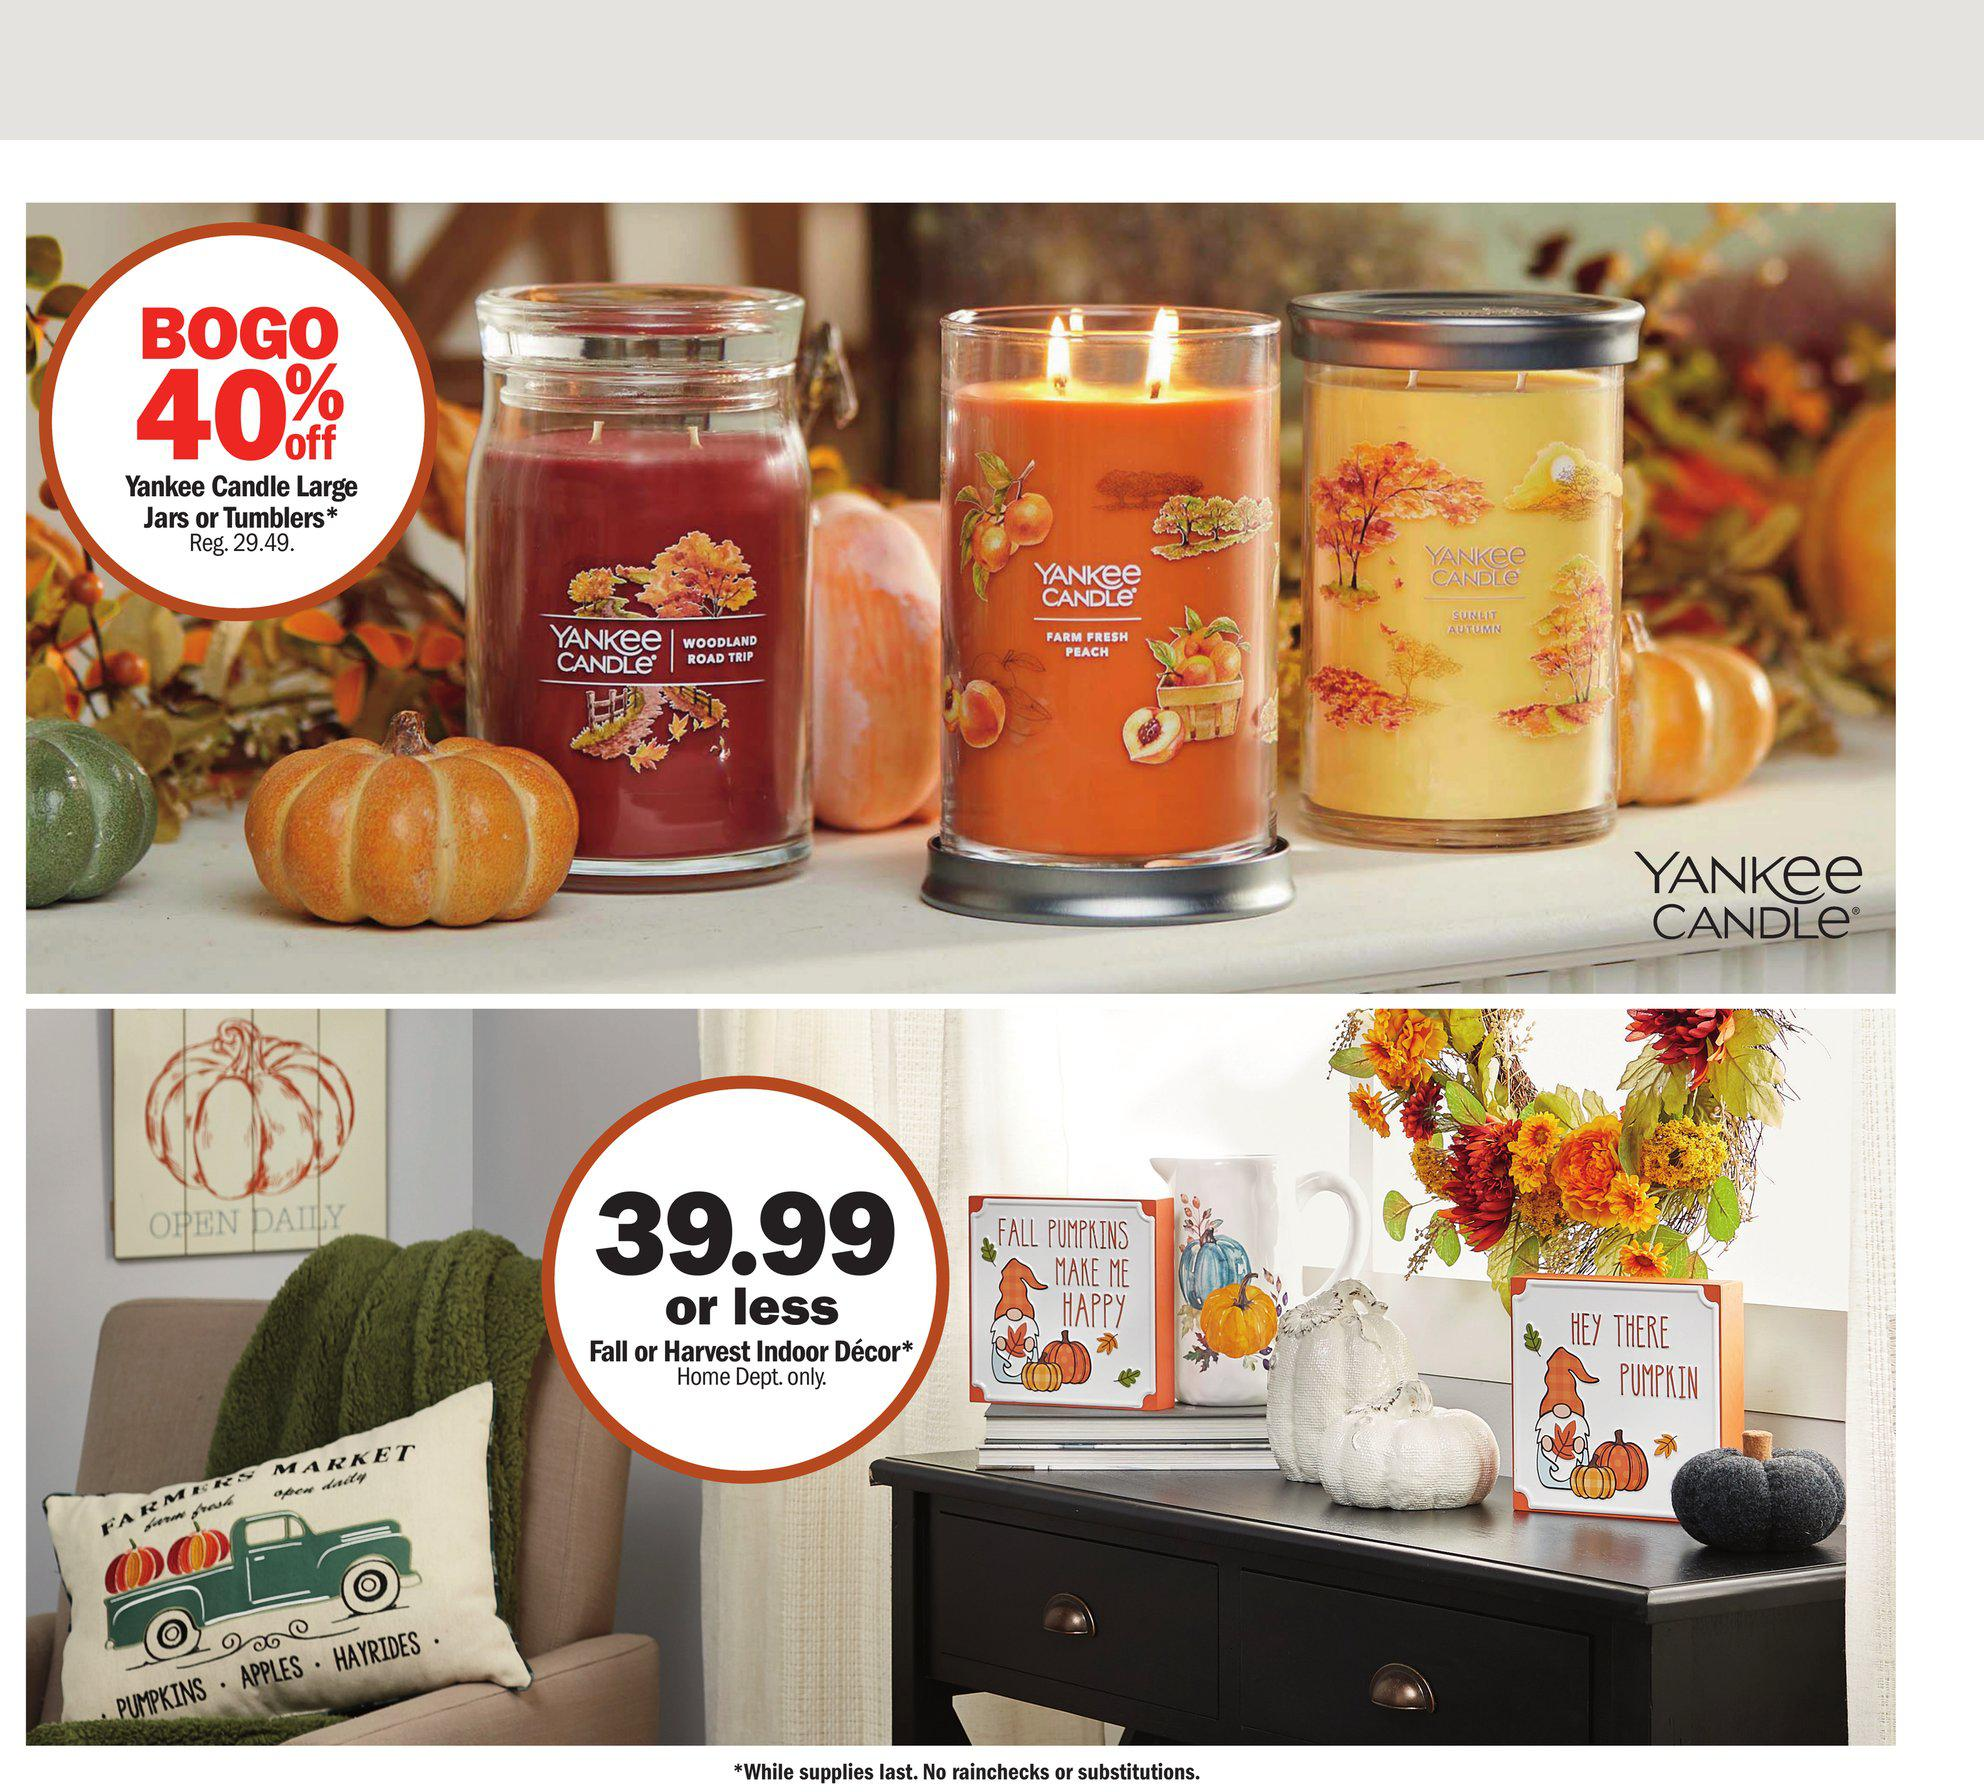 10.10.2021 Meijer ad 2. page